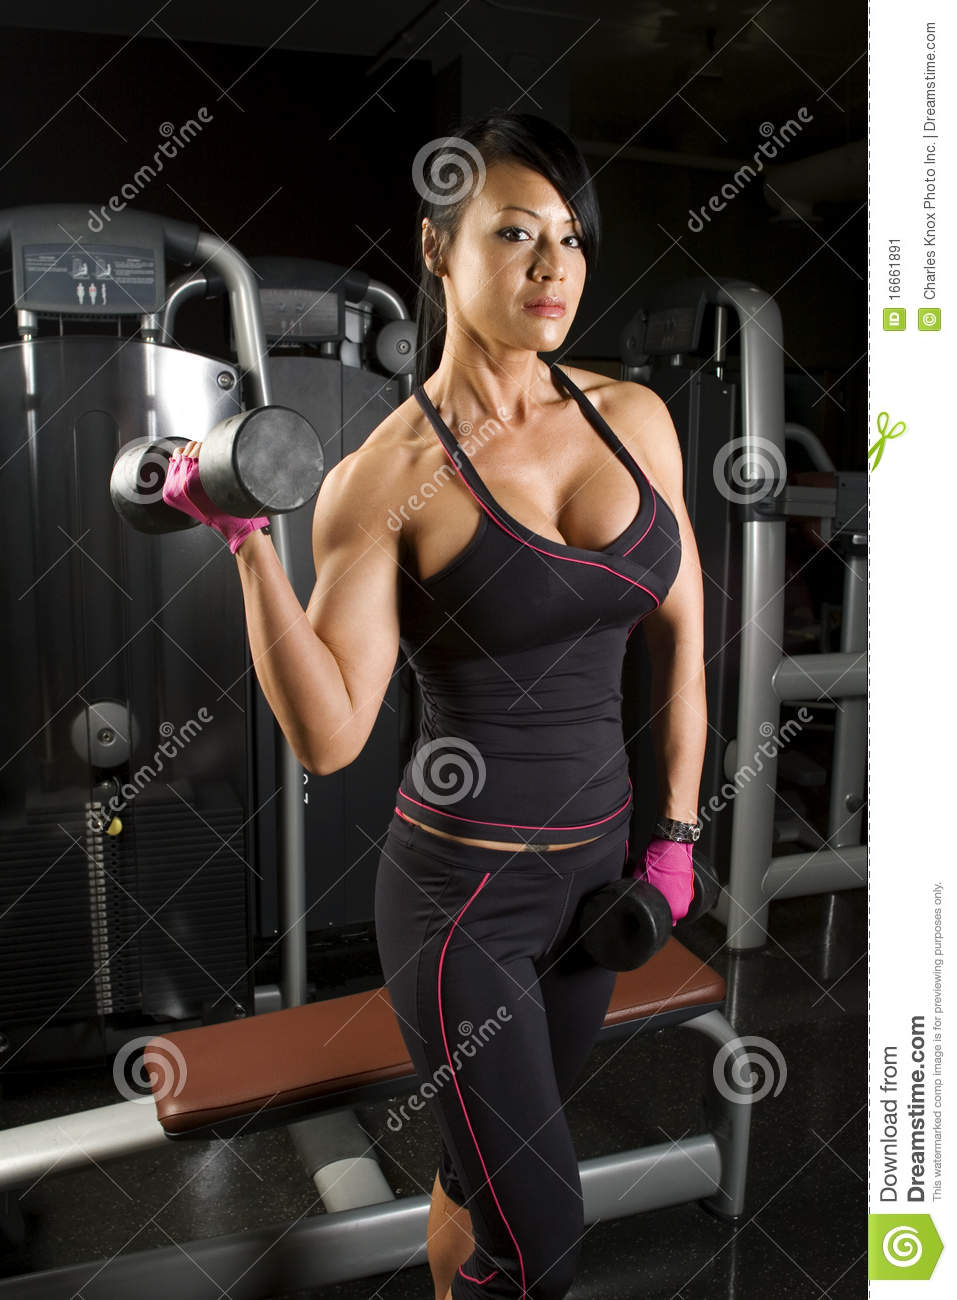 Asian Woman Working Out With Weights Stock Image - Image -1053